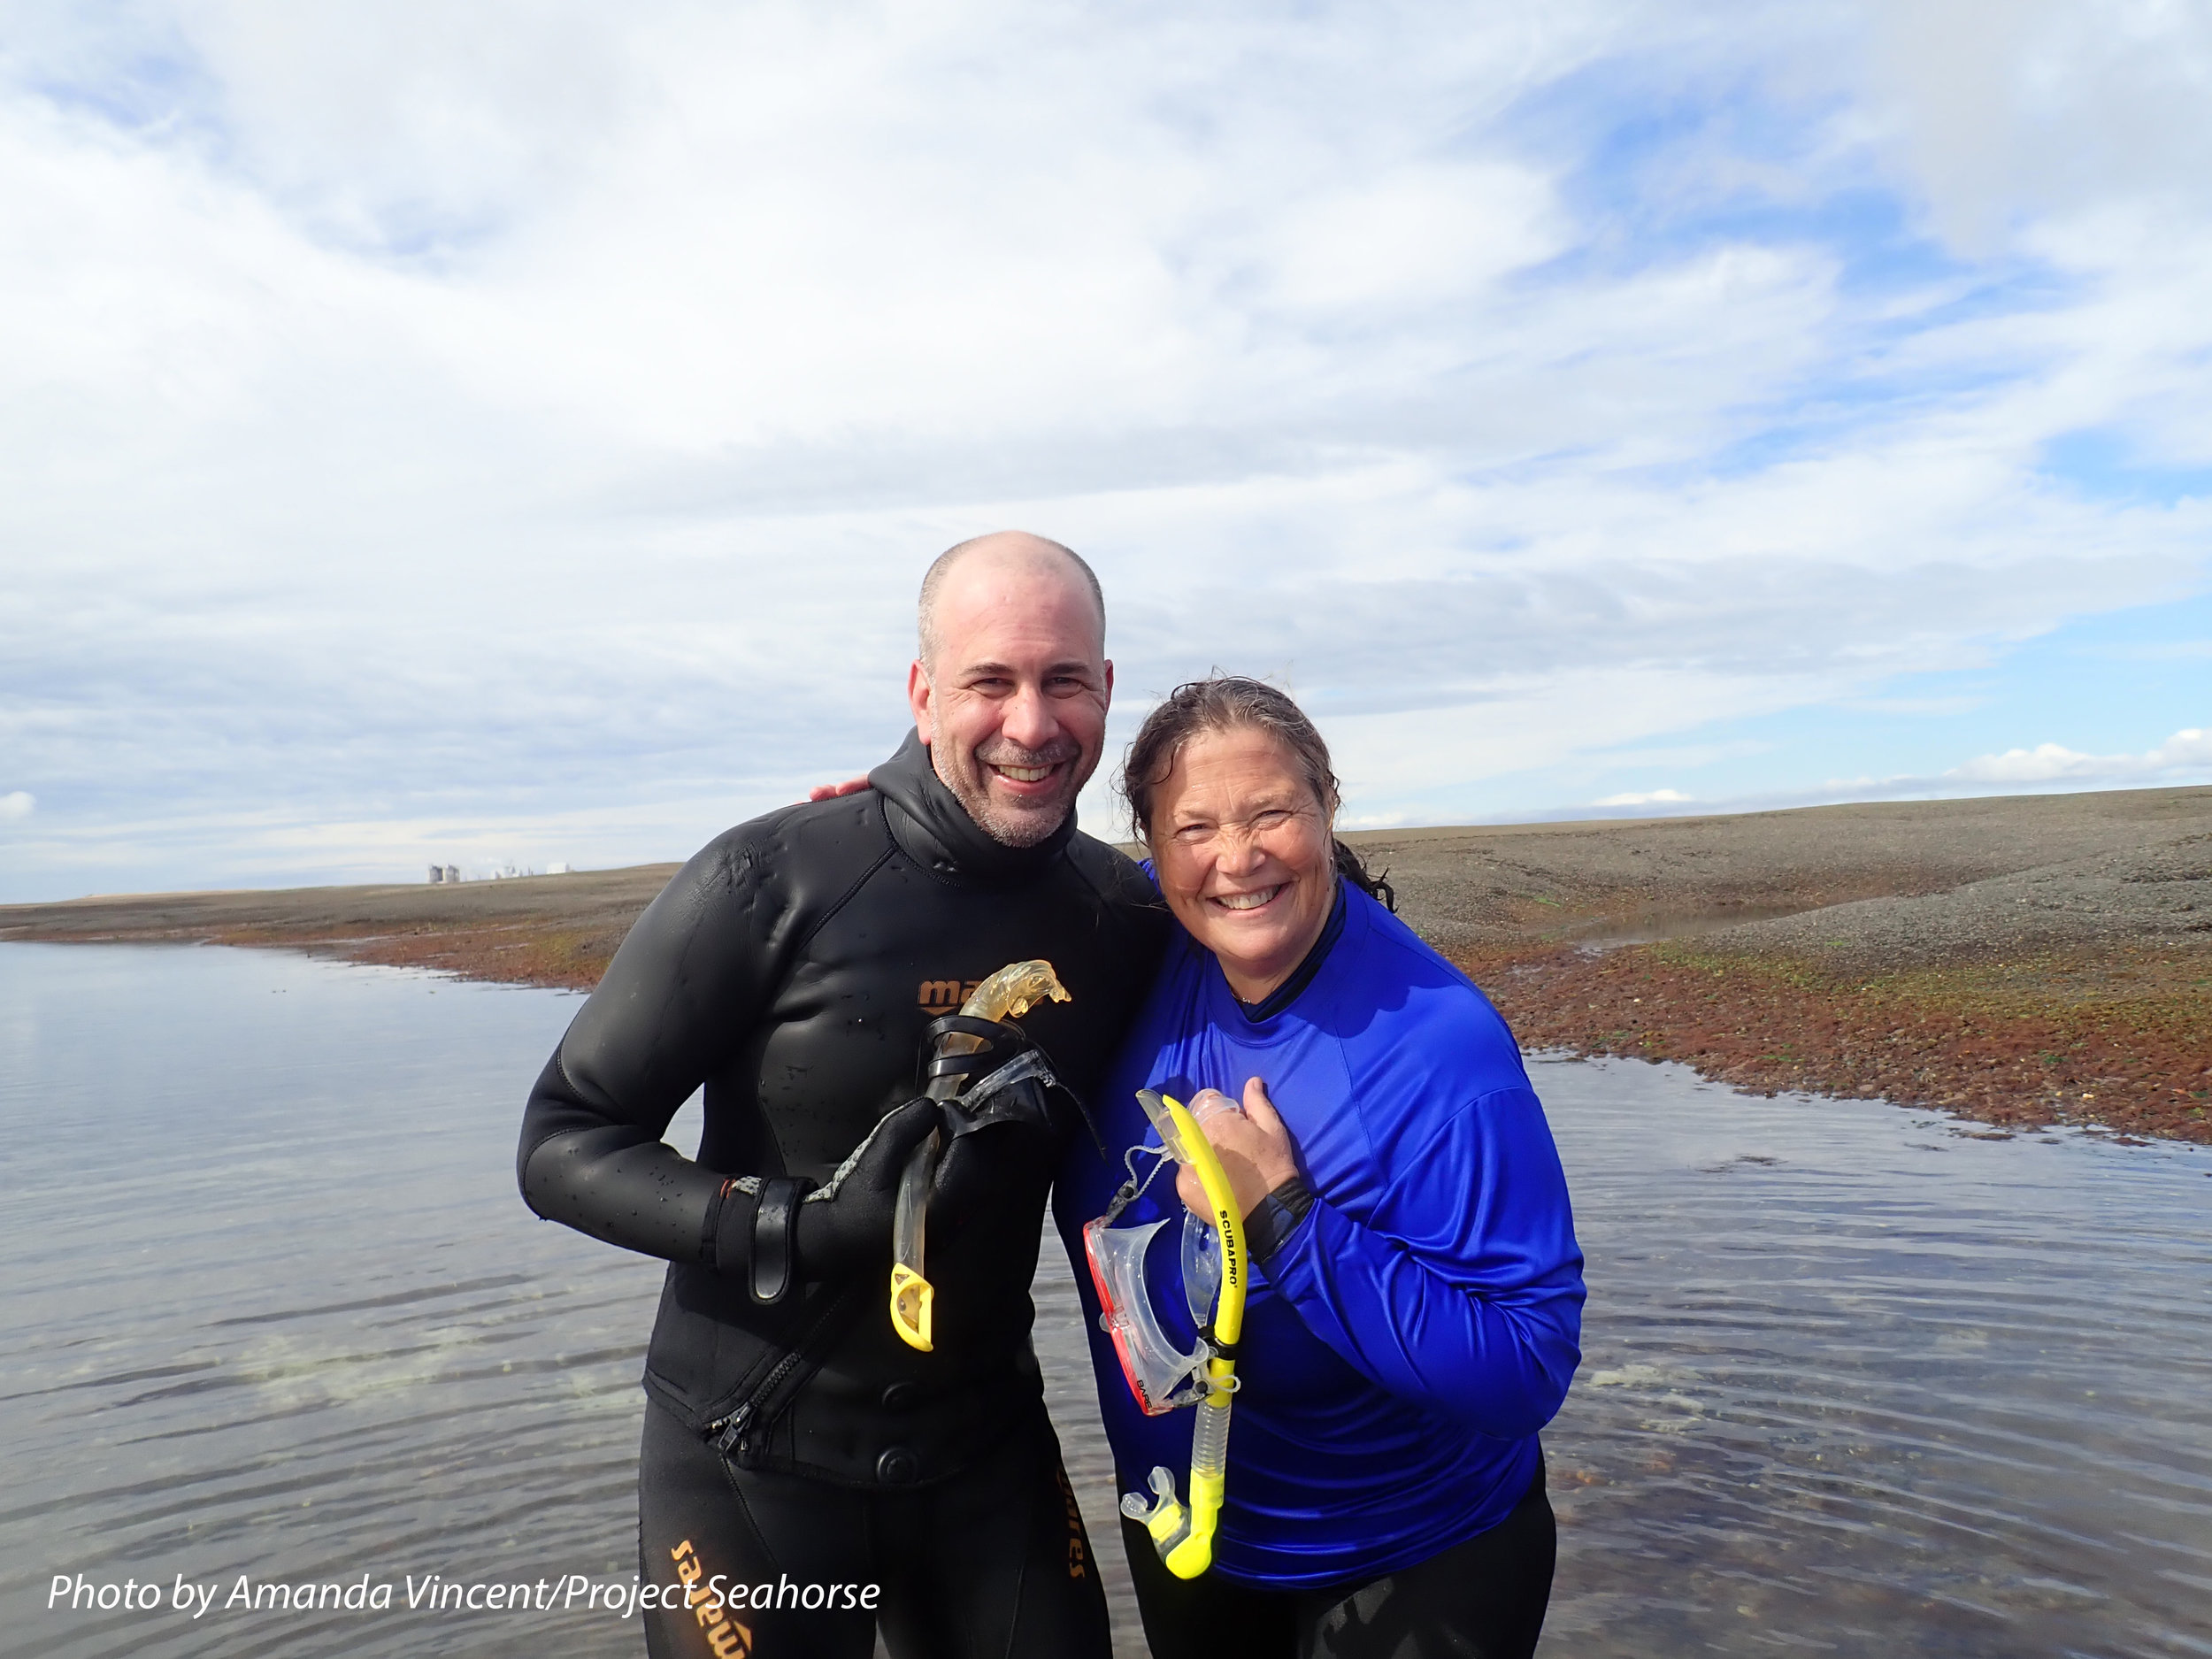 Diego and Amanda, happy and excited after finding multiple Patagonian seahorses